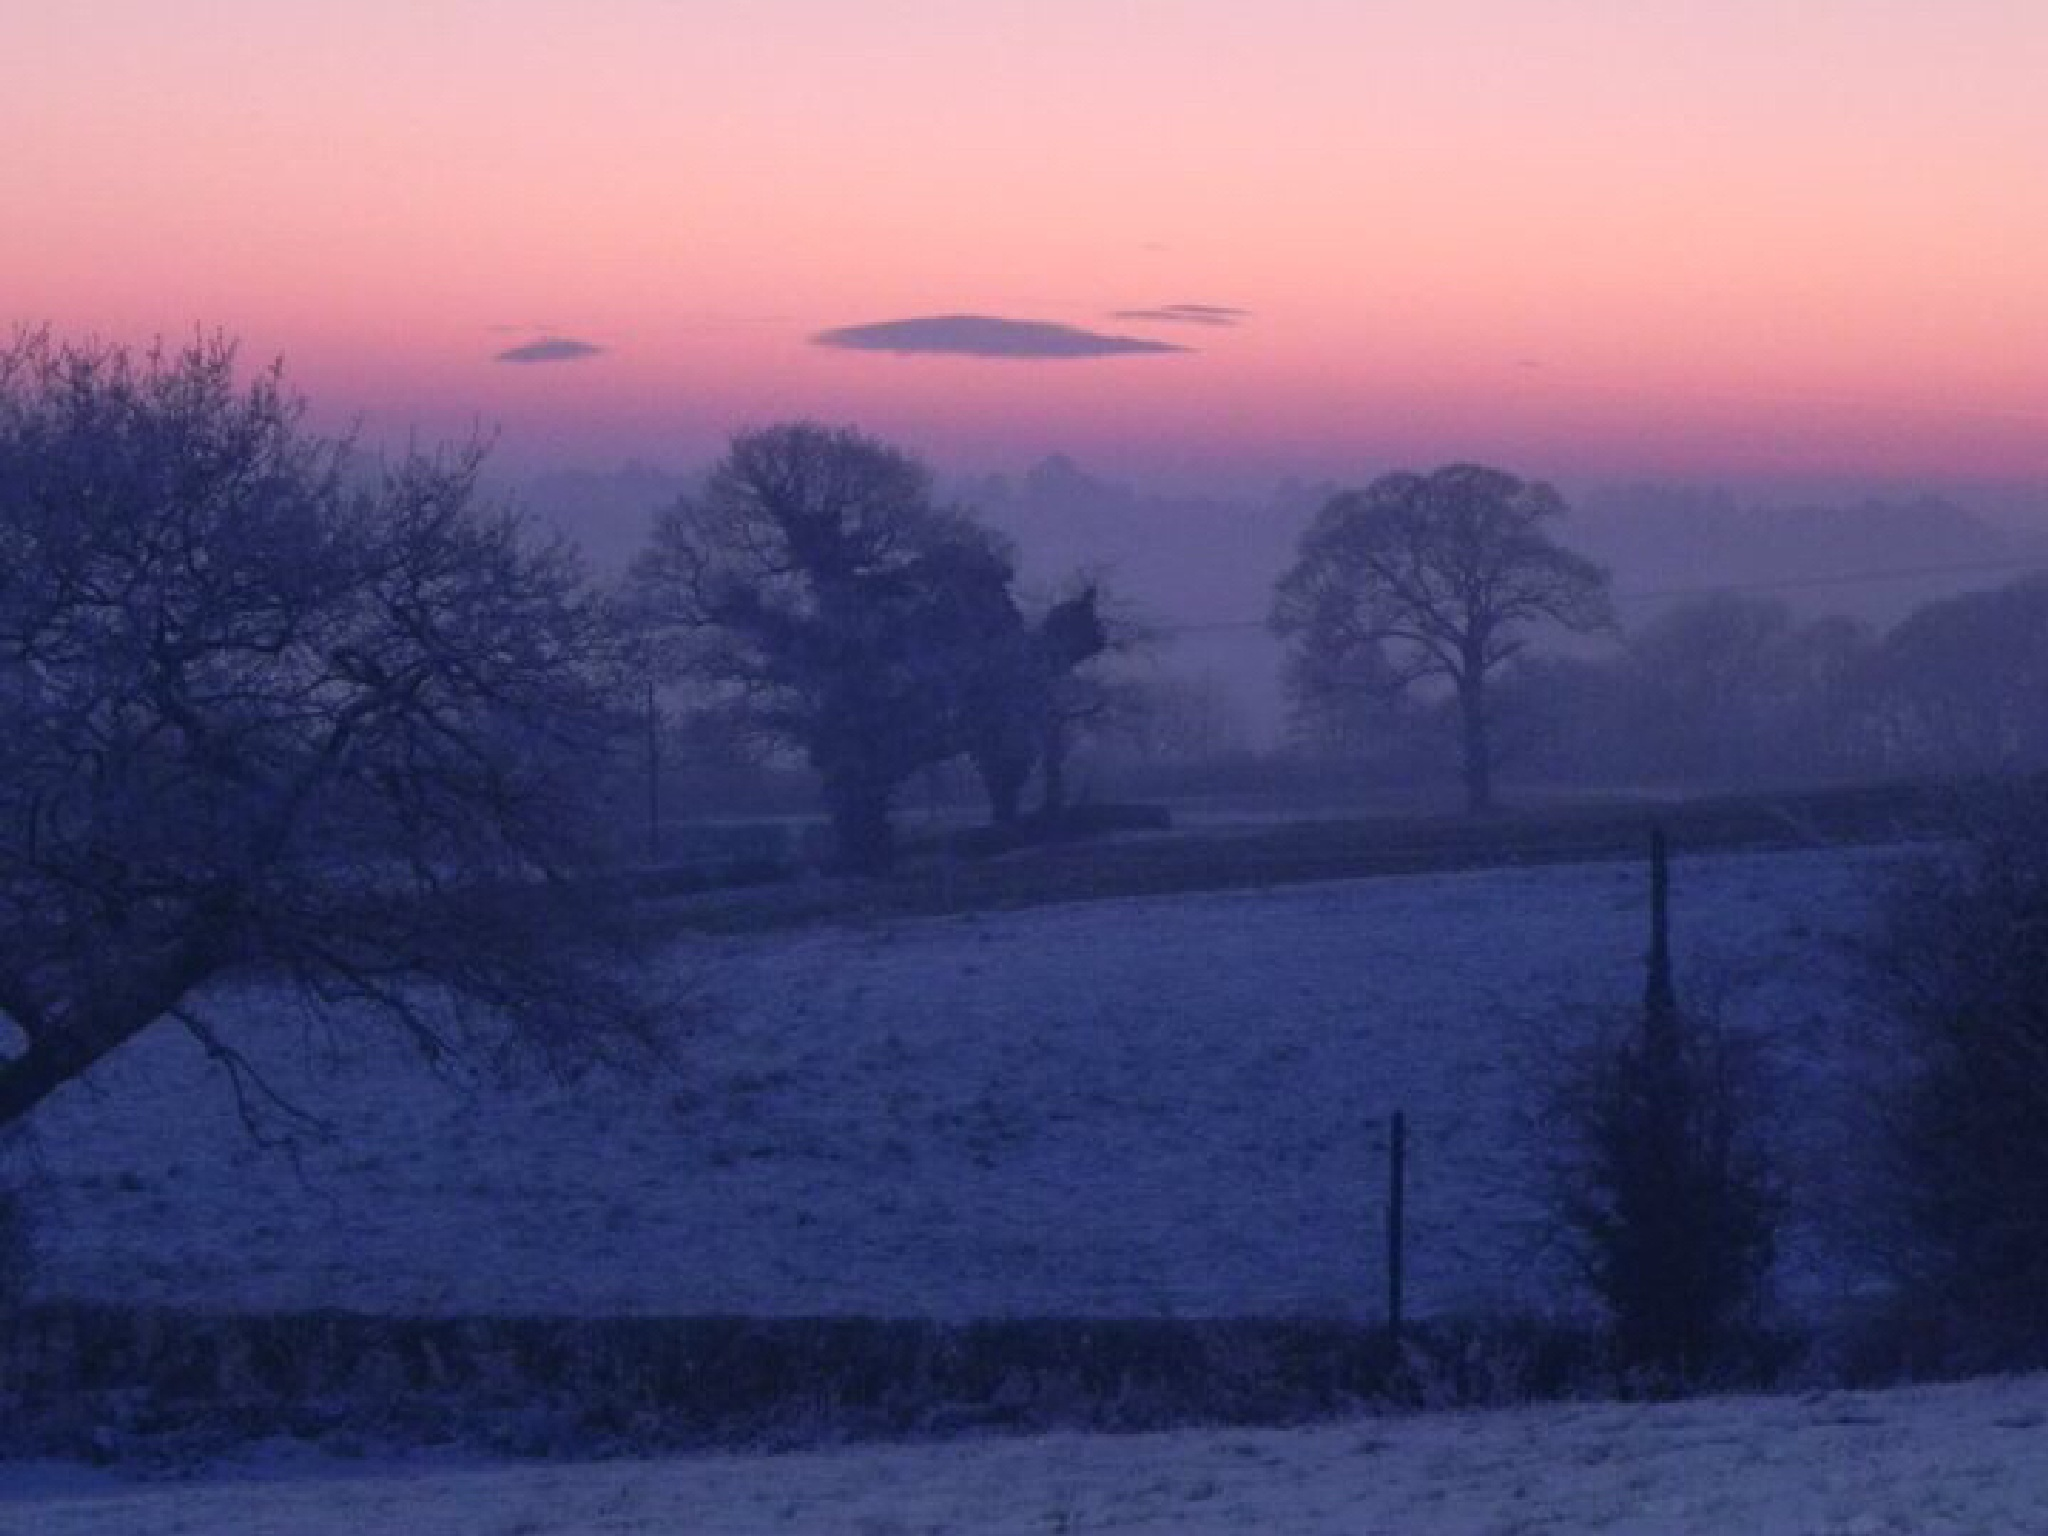 Winter sunset by Peter Stowell